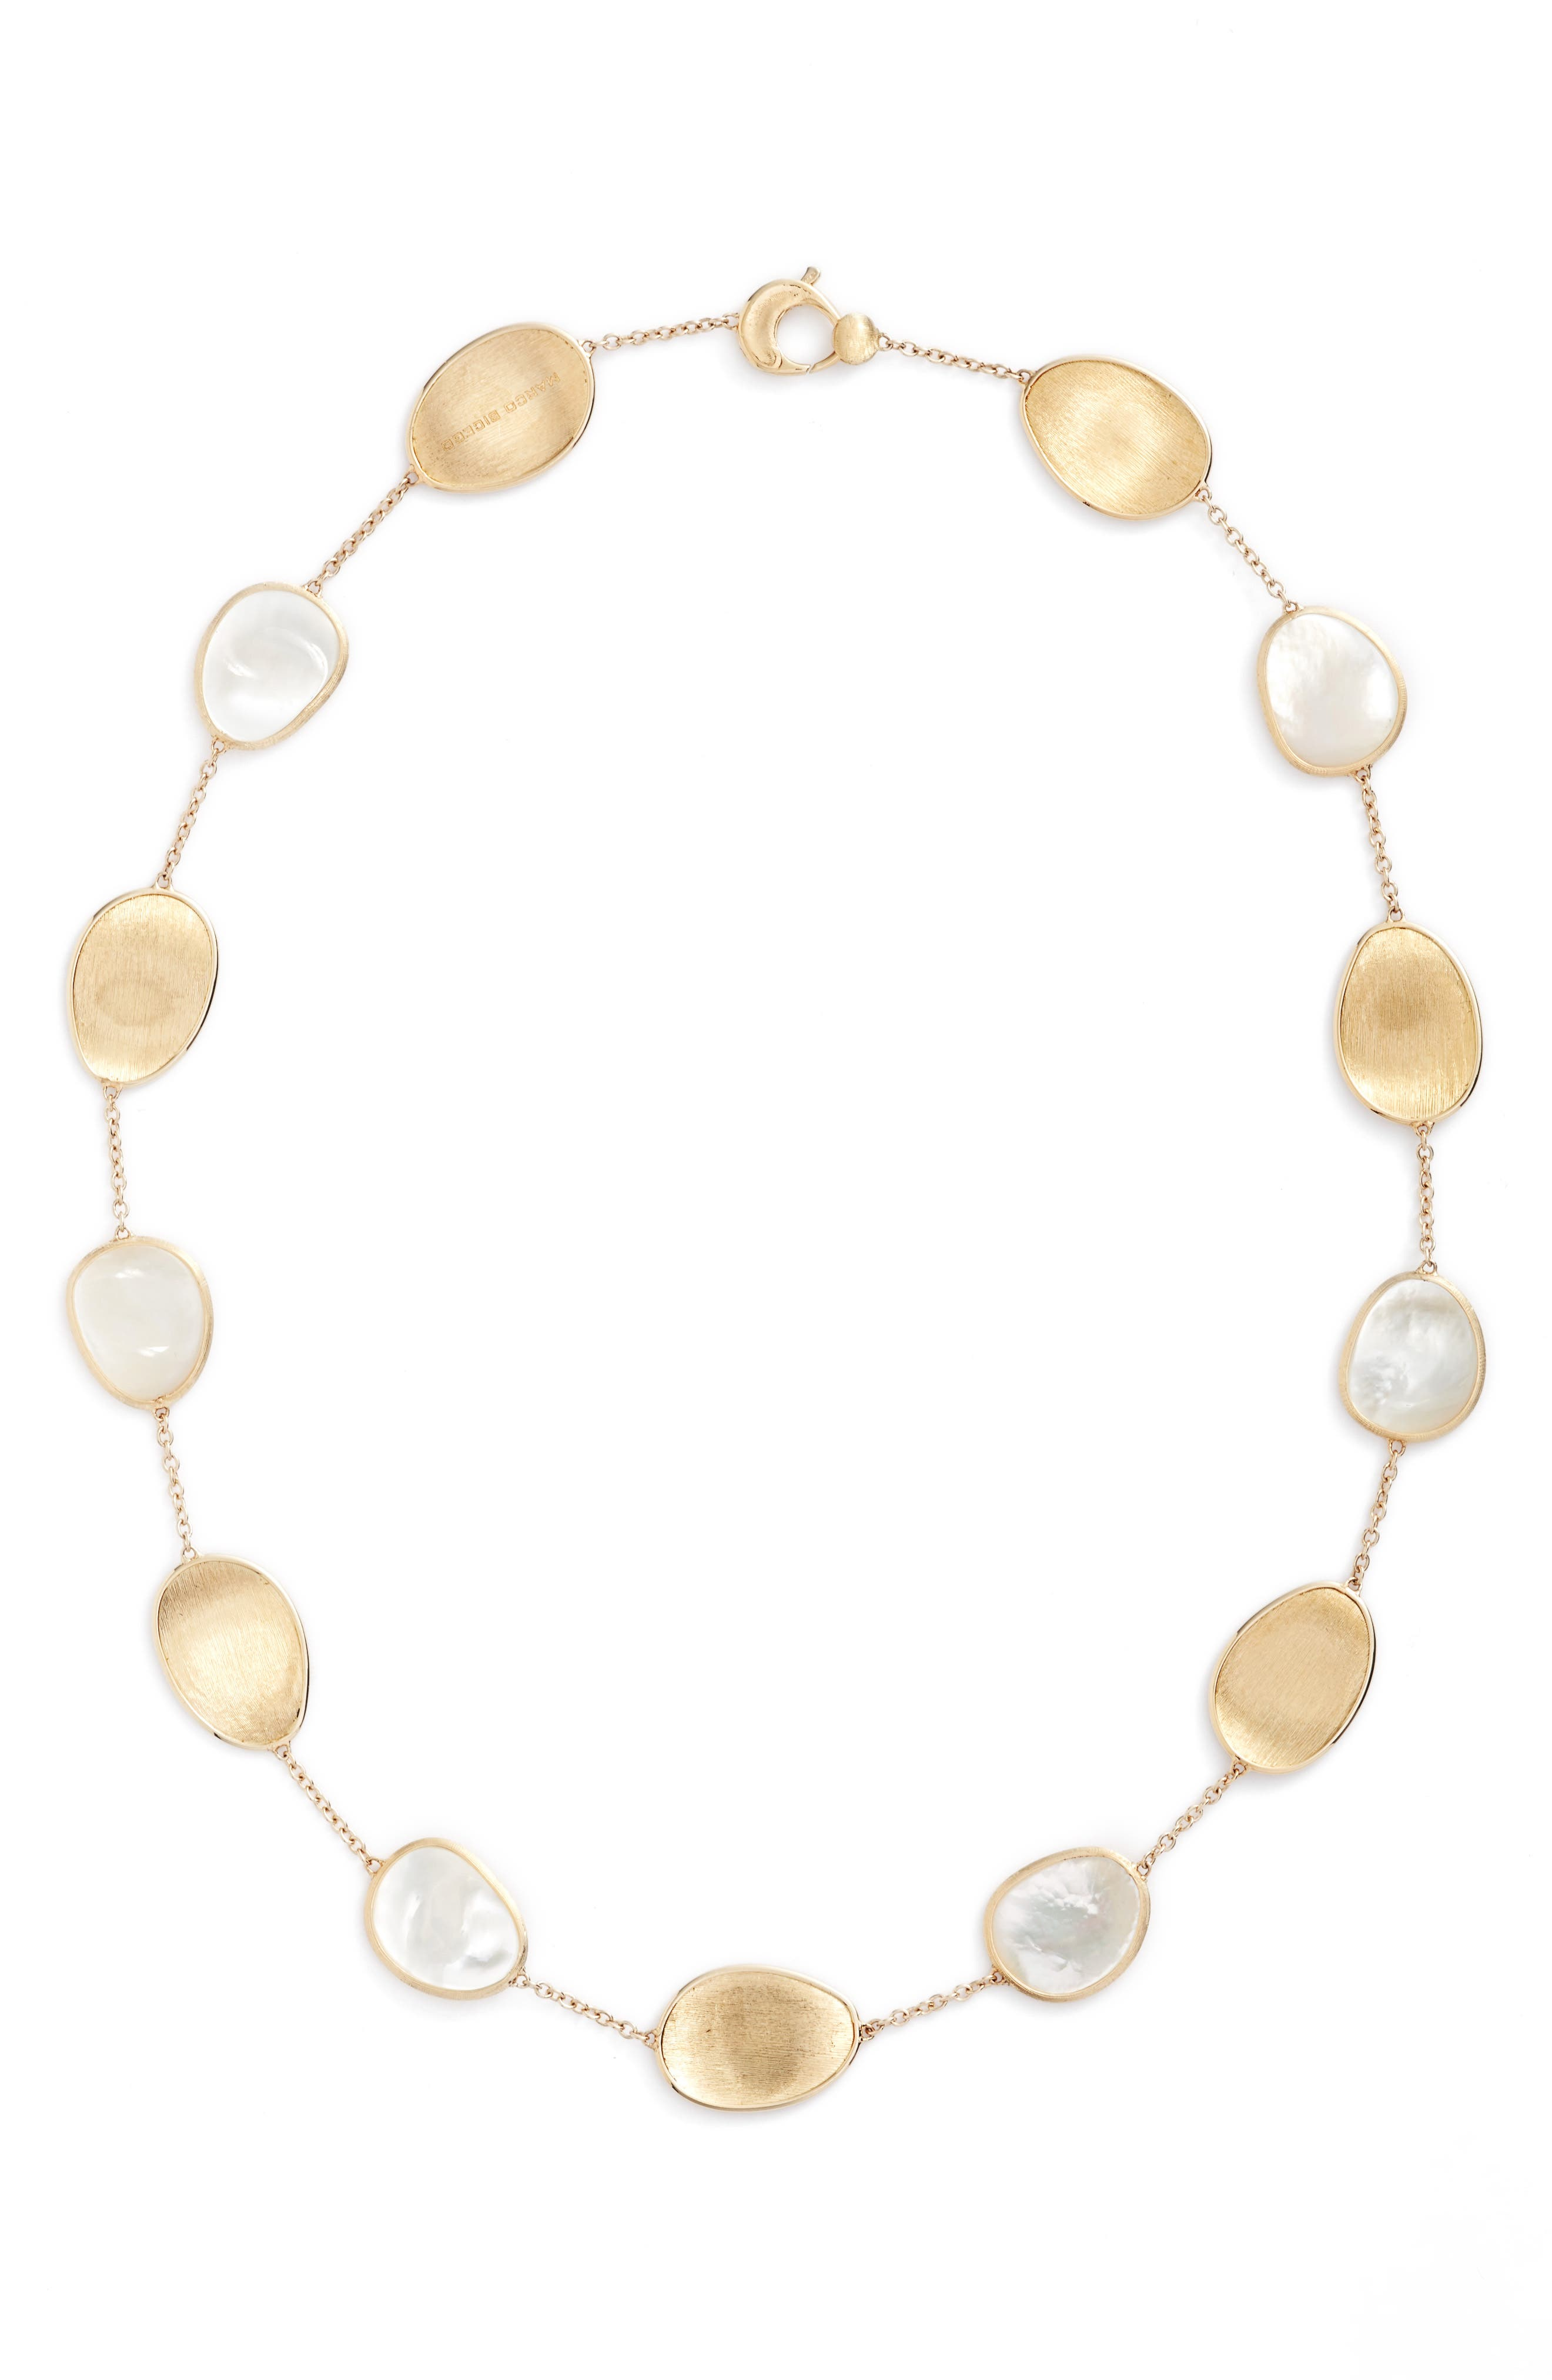 Lunaria Mother of Pearl Collar Necklace,                             Main thumbnail 1, color,                             WHITE MOTHER OF PEARL